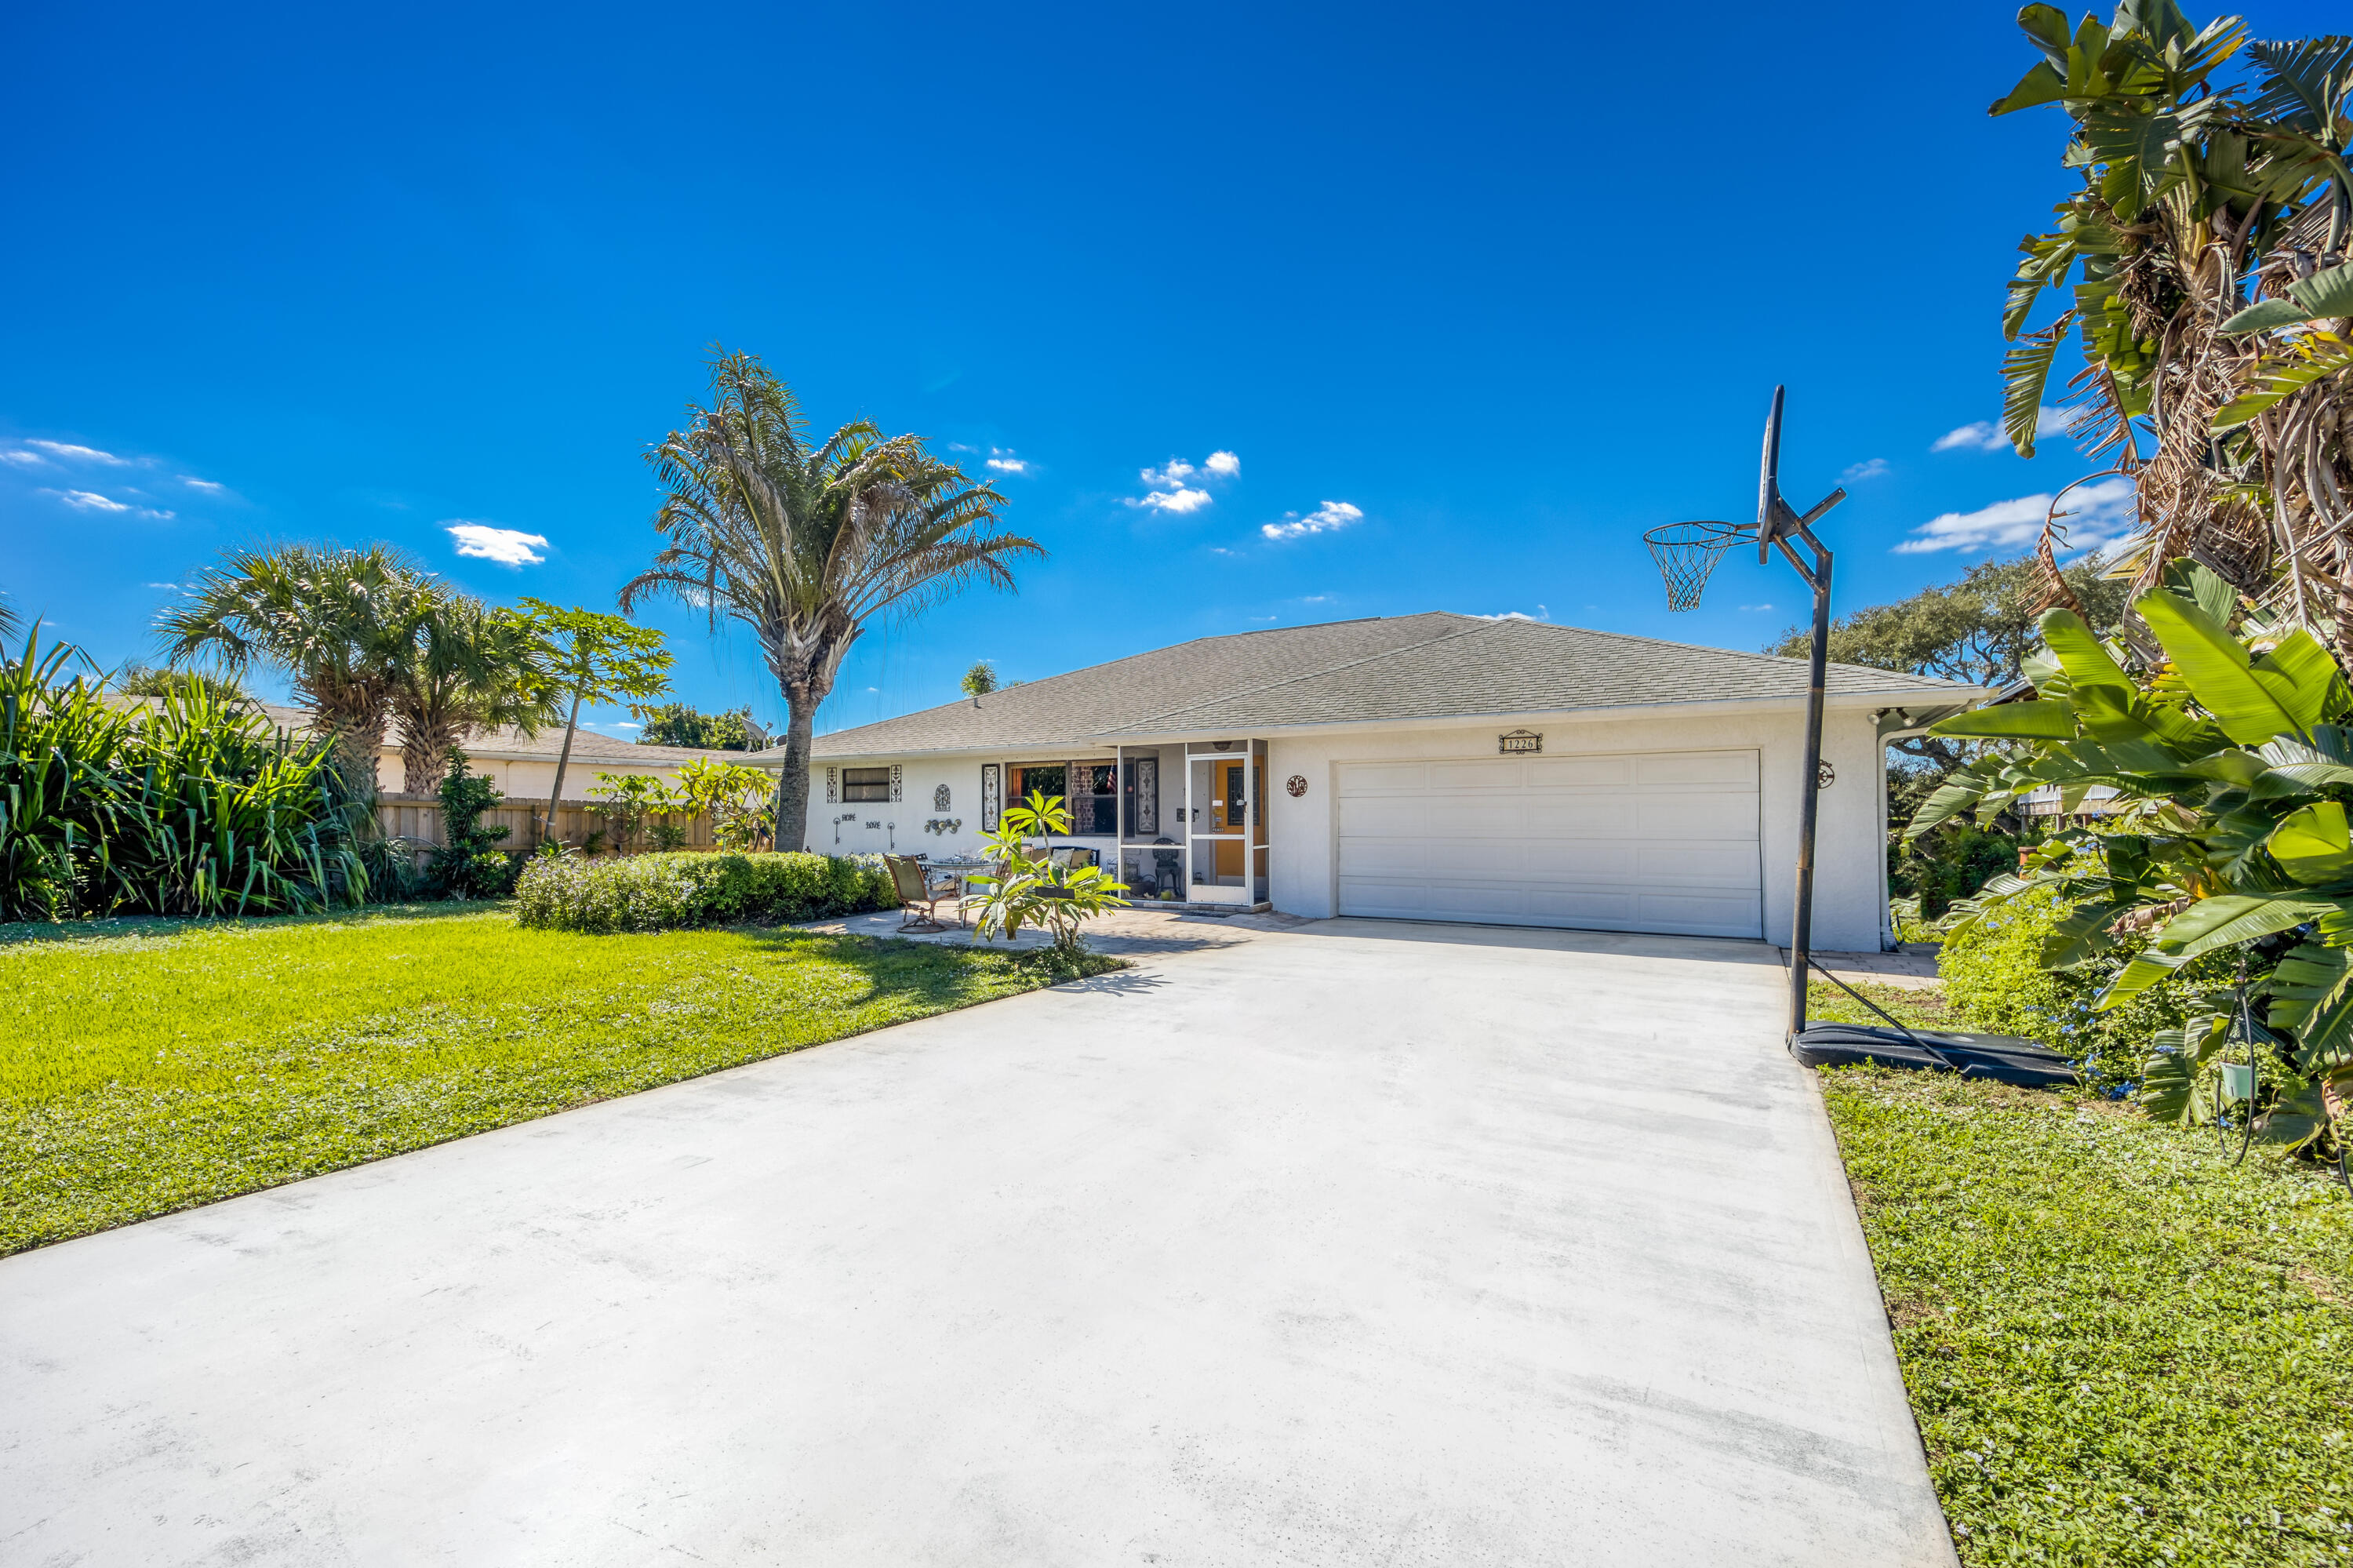 Home for sale in SKYLINE PARK FIRST ADDITION TO Jensen Beach Florida